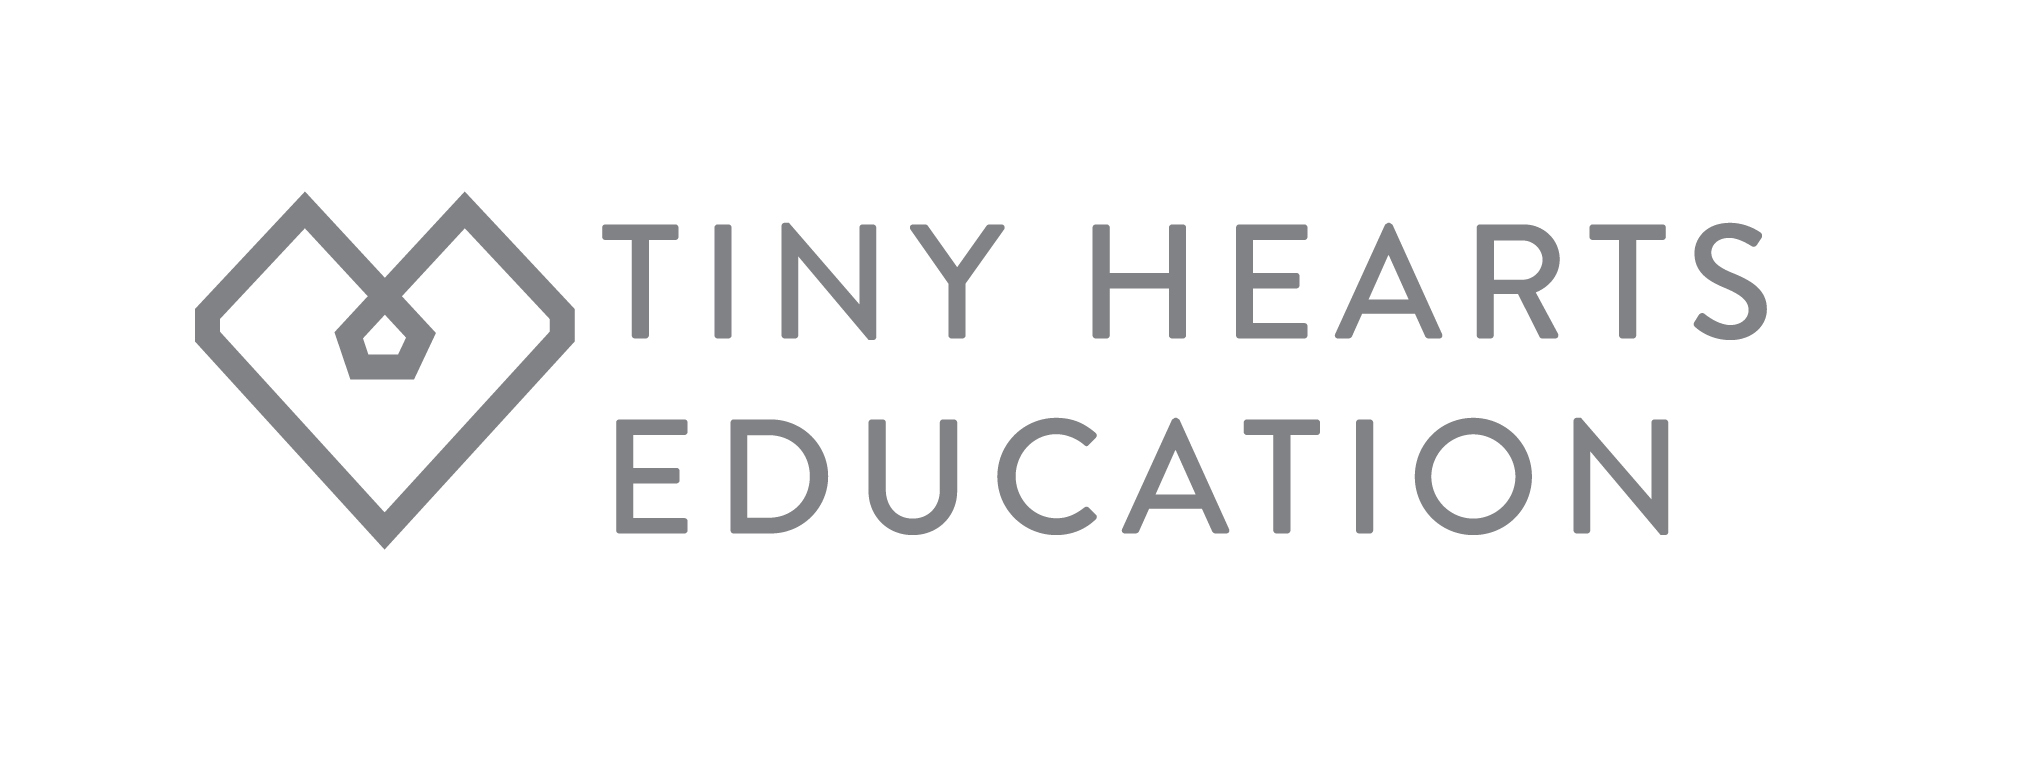 Tiny Hearts Education